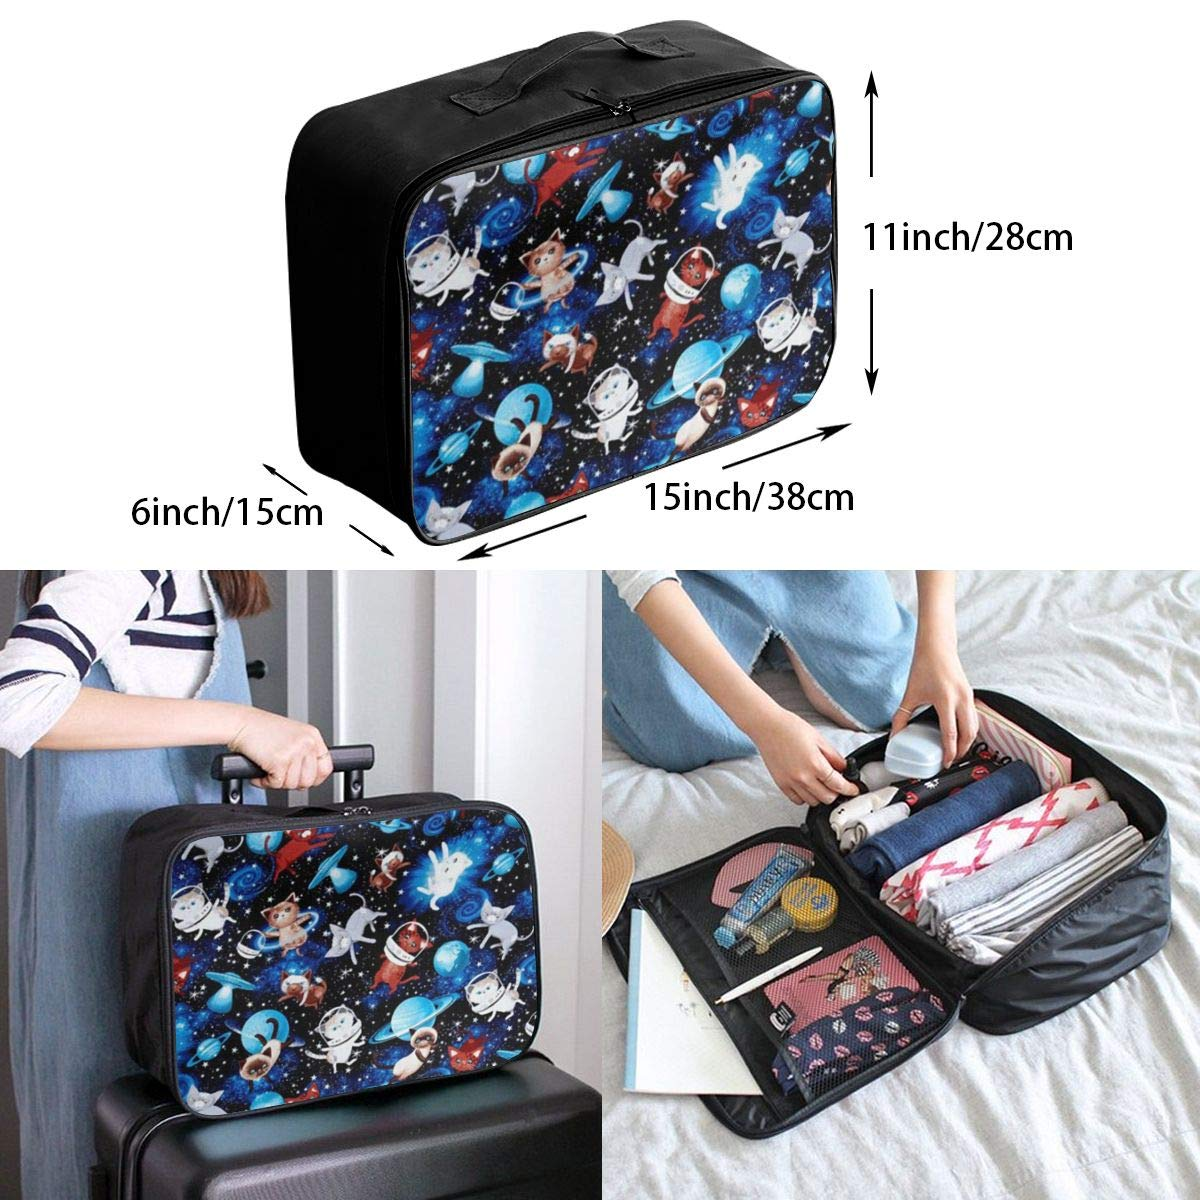 ADGAI Space Cats Space Canvas Travel Weekender Bag,Fashion Custom Lightweight Large Capacity Portable Luggage Bag,Suitcase Trolley Bag